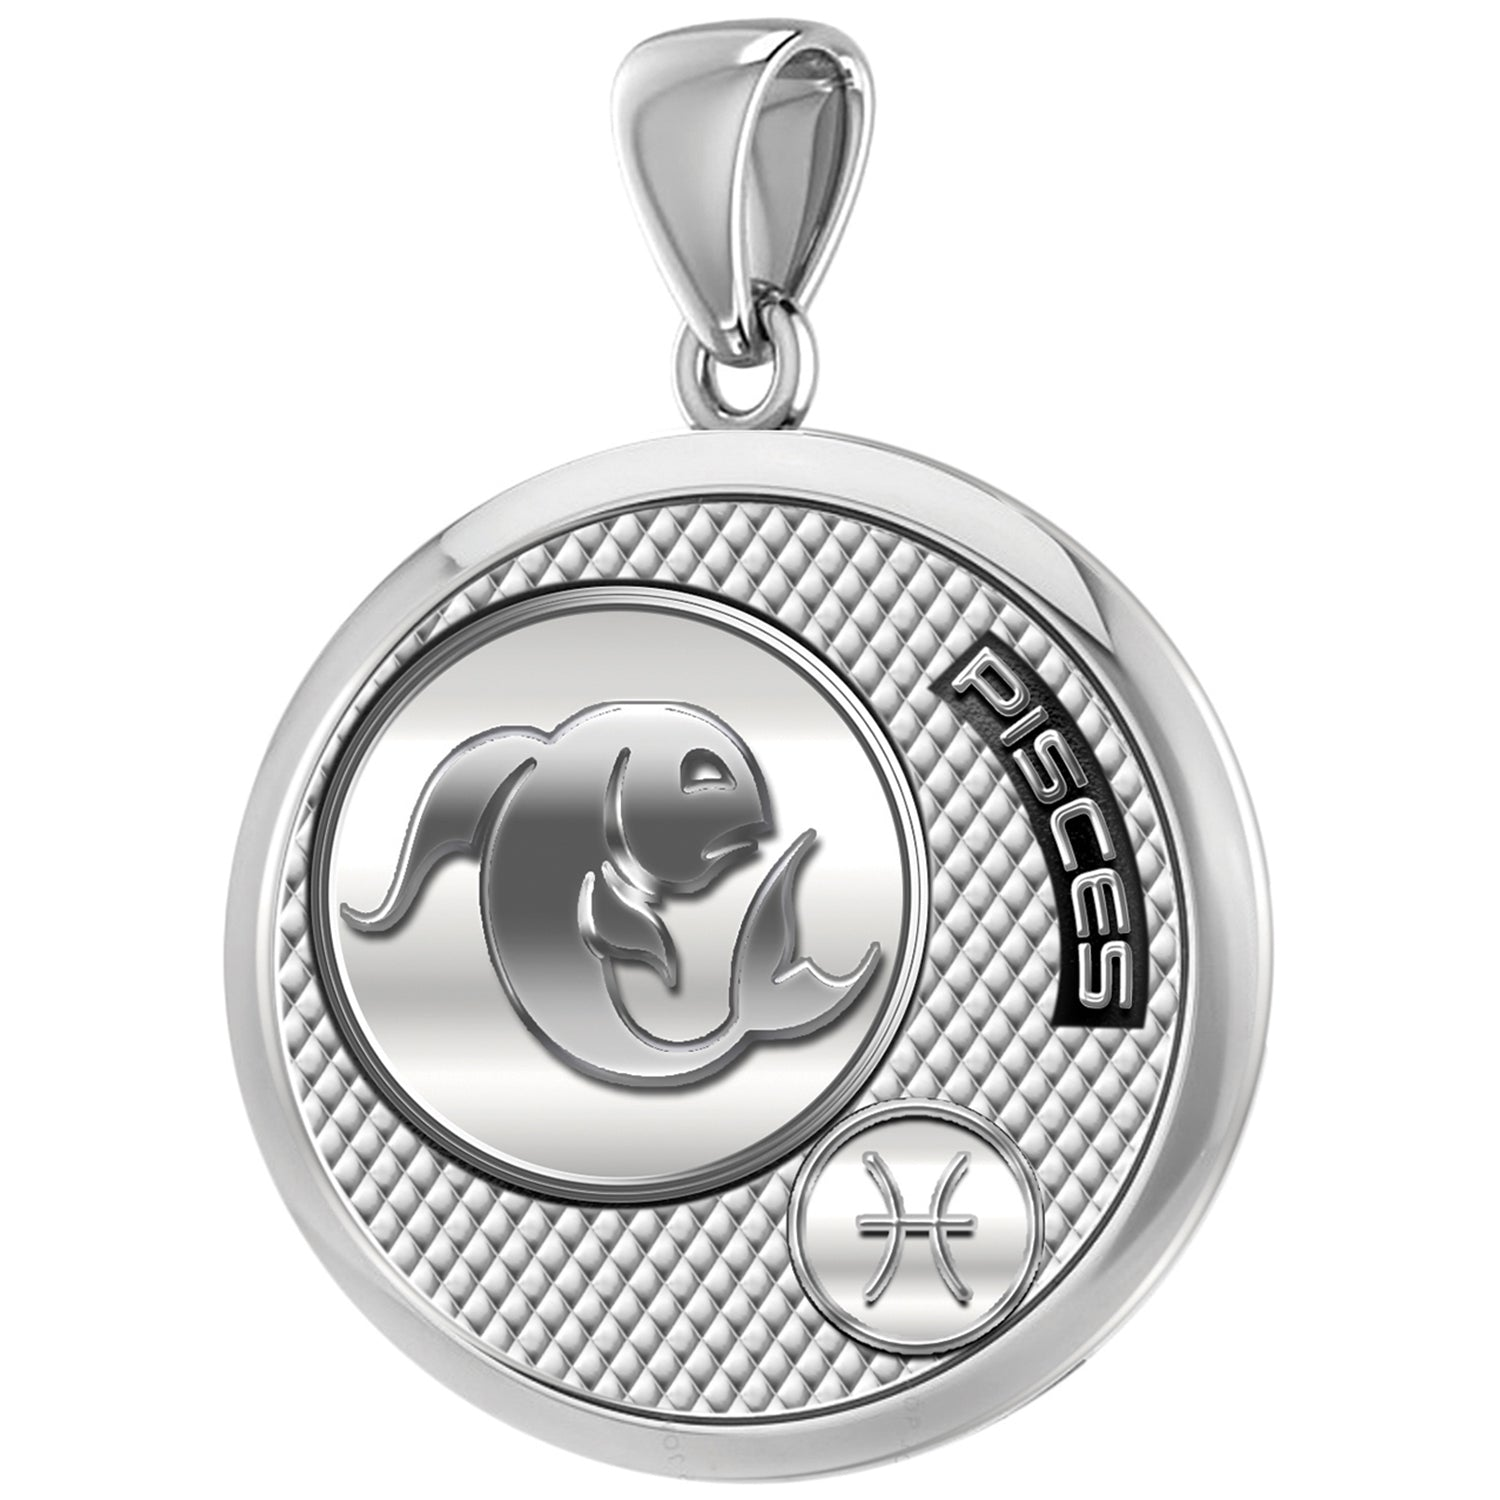 Men's 925 Sterling Silver Round Pisces Zodiac Polished Finish Pendant Necklace